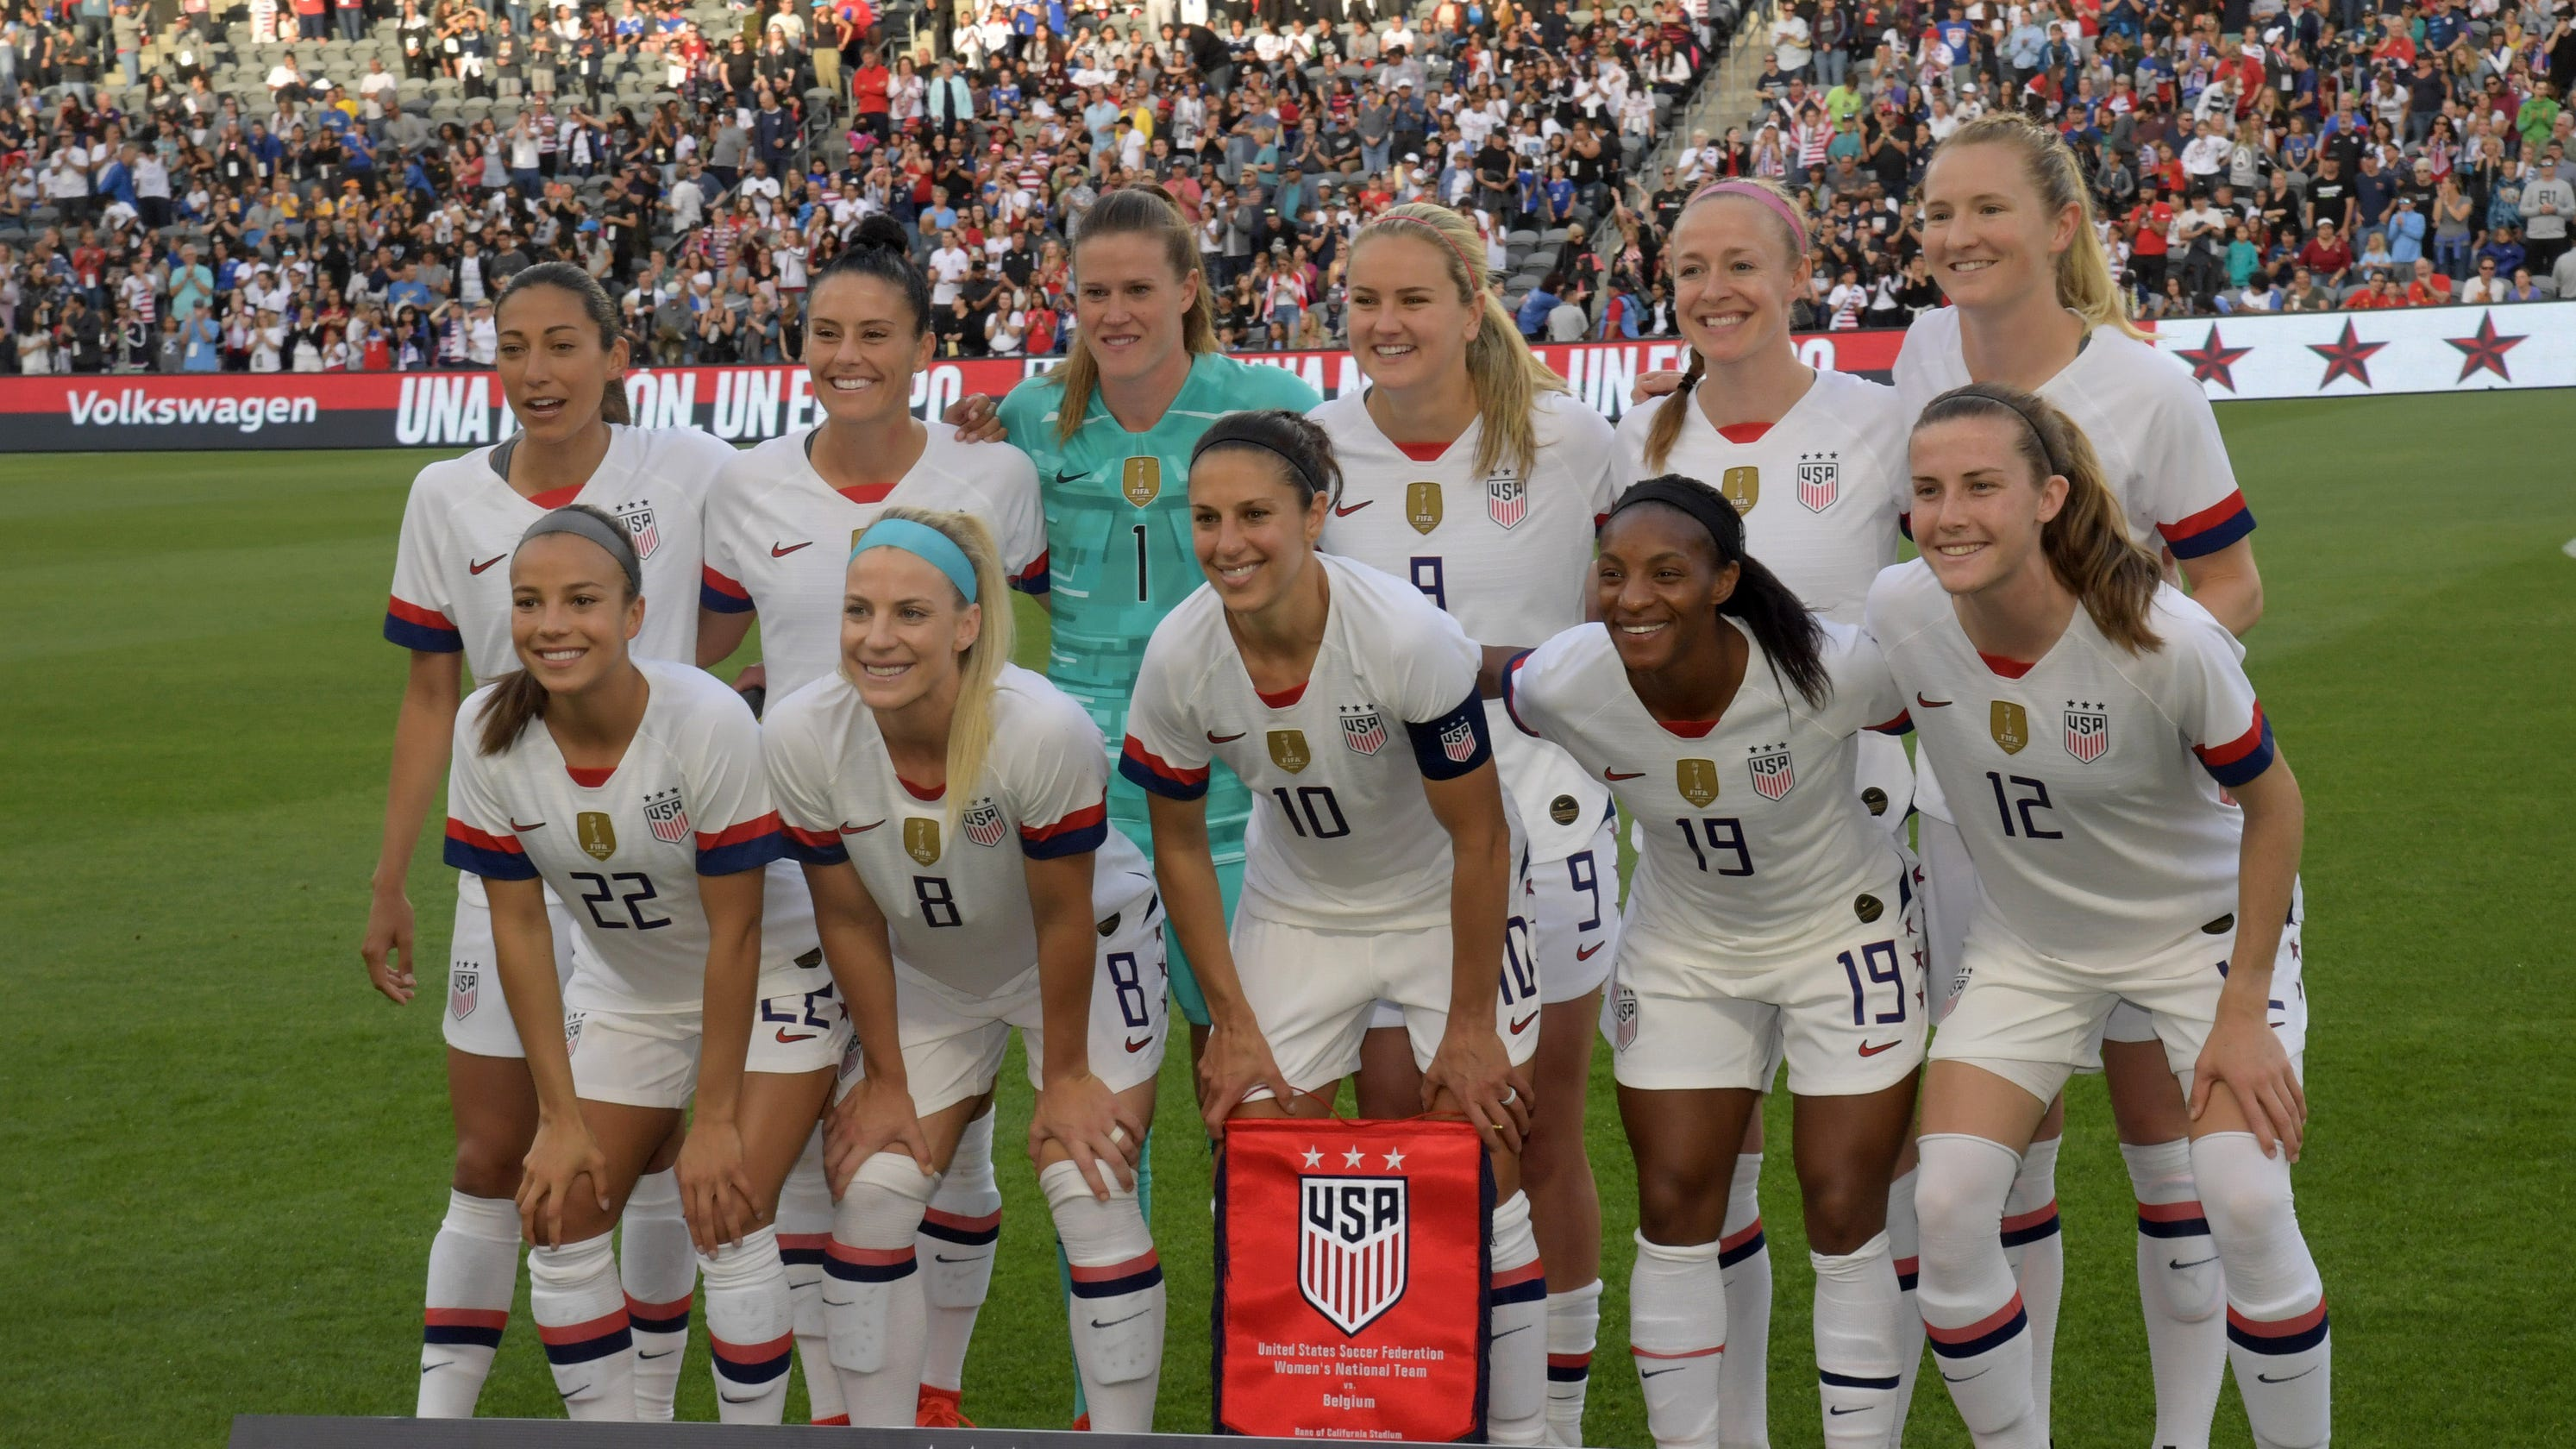 Usa Womens Soccer Schedule 2019 2019 FIFA Women's World Cup: USWNT schedule, game times, how to watch